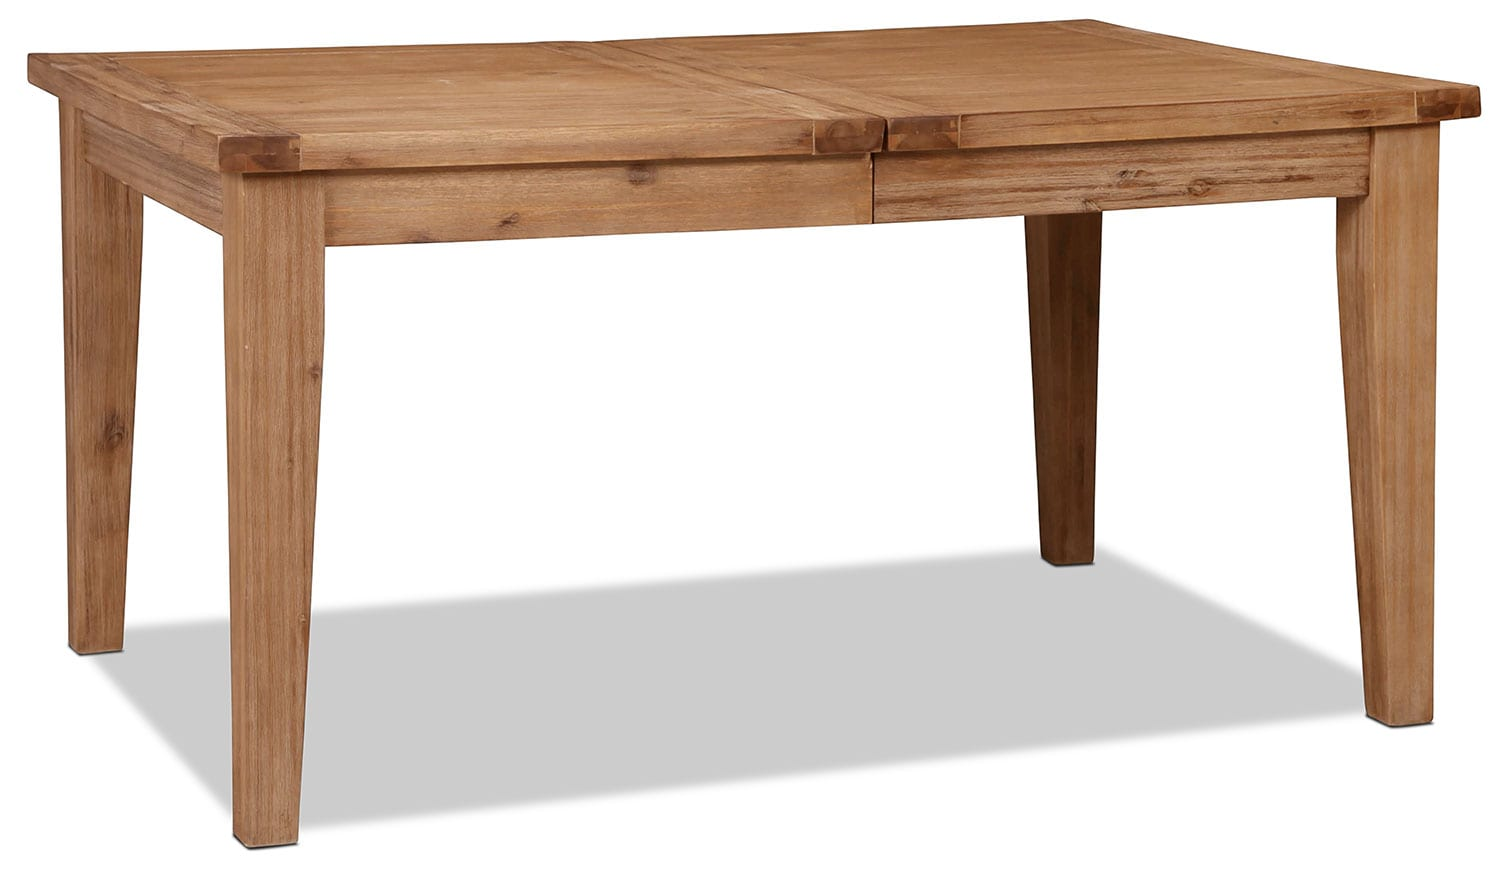 Dining Room Furniture - Annabella Table - Natural